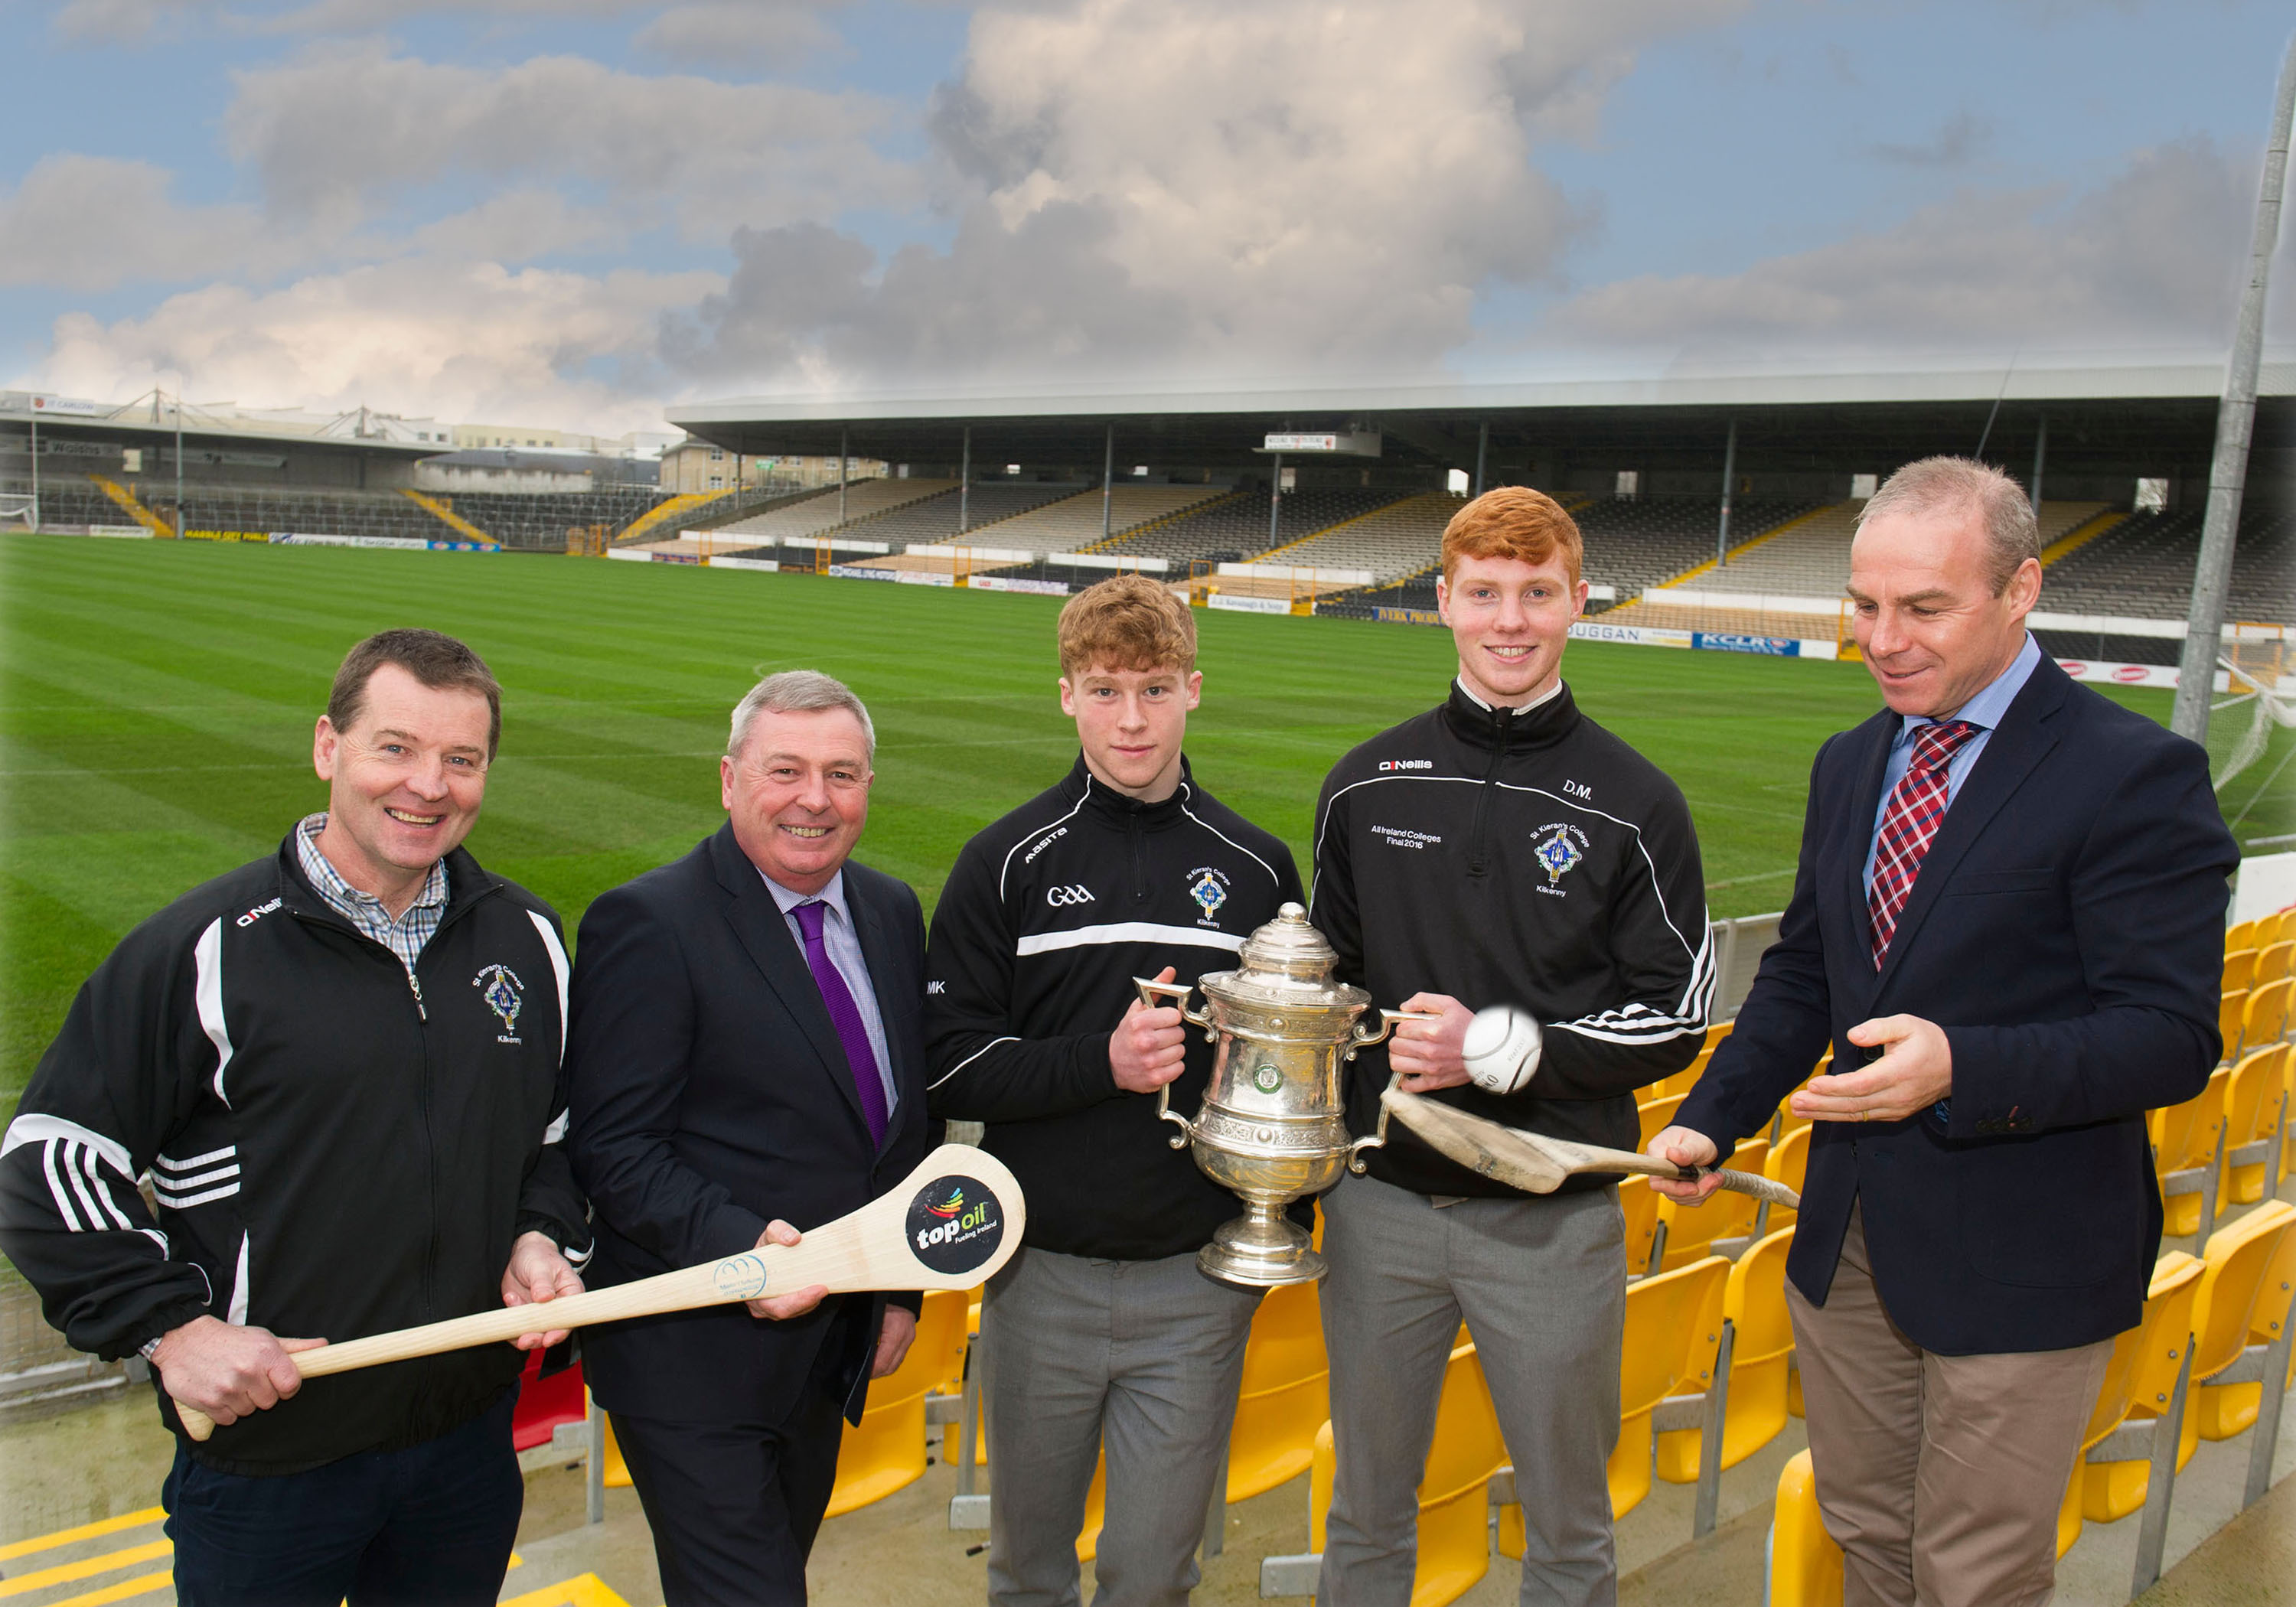 Former St. Kieran's College and Kilkenny star Charlie Carter of Top Oil demonstrating his famous solo run to from left, St. Kieran's Manager Tom Hogan, Top Oil Area Sales Manager Seamus Grace. Matin Keoghan, Vice Captain and Adrian Mullen, Captain, St. Kieran's College.